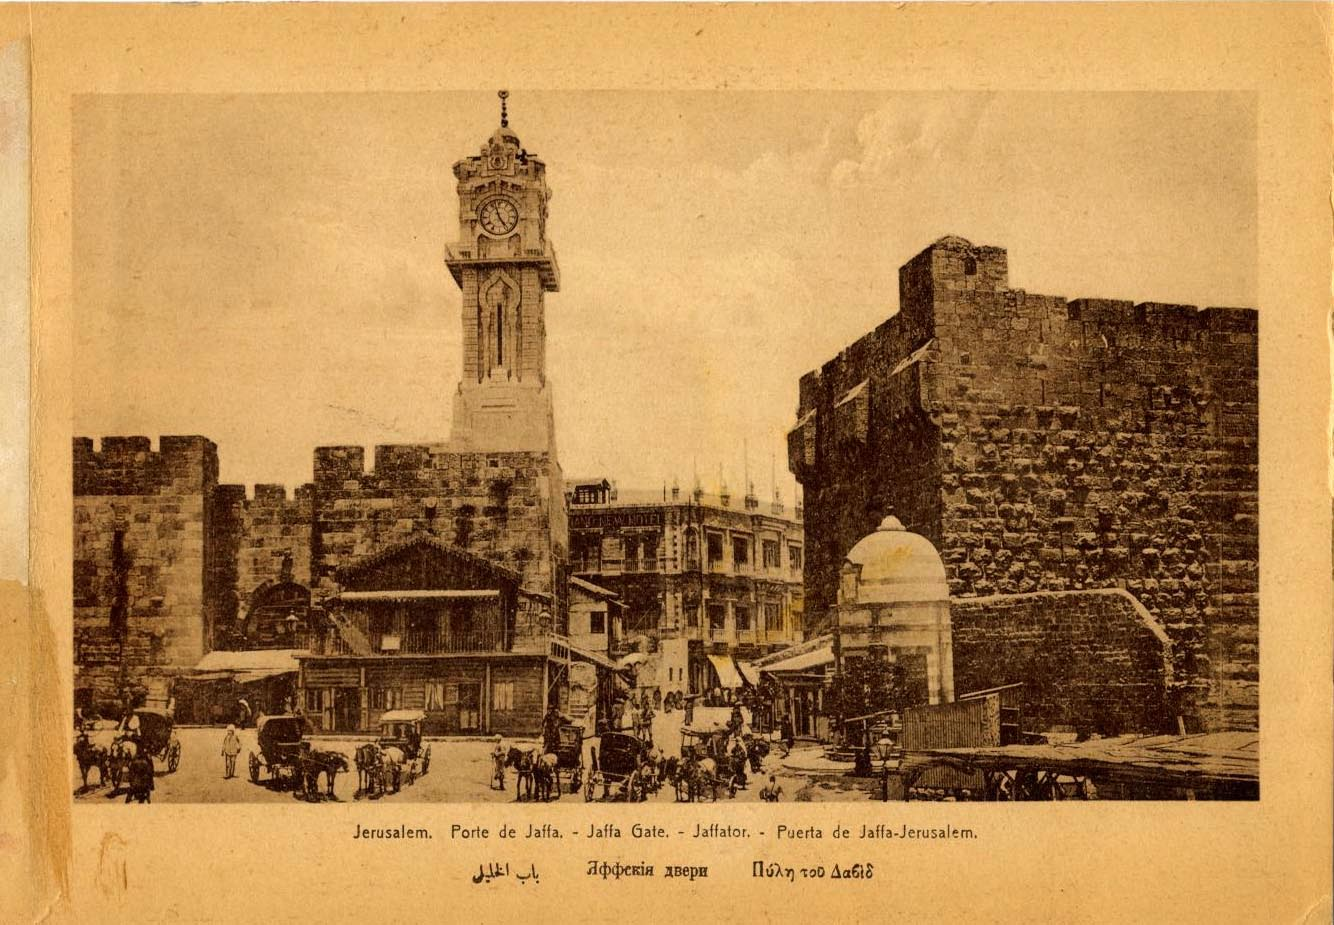 The Jerusalem clock tower at Jaffa Gate, circa 1913. Photo via Gilai Collectibles